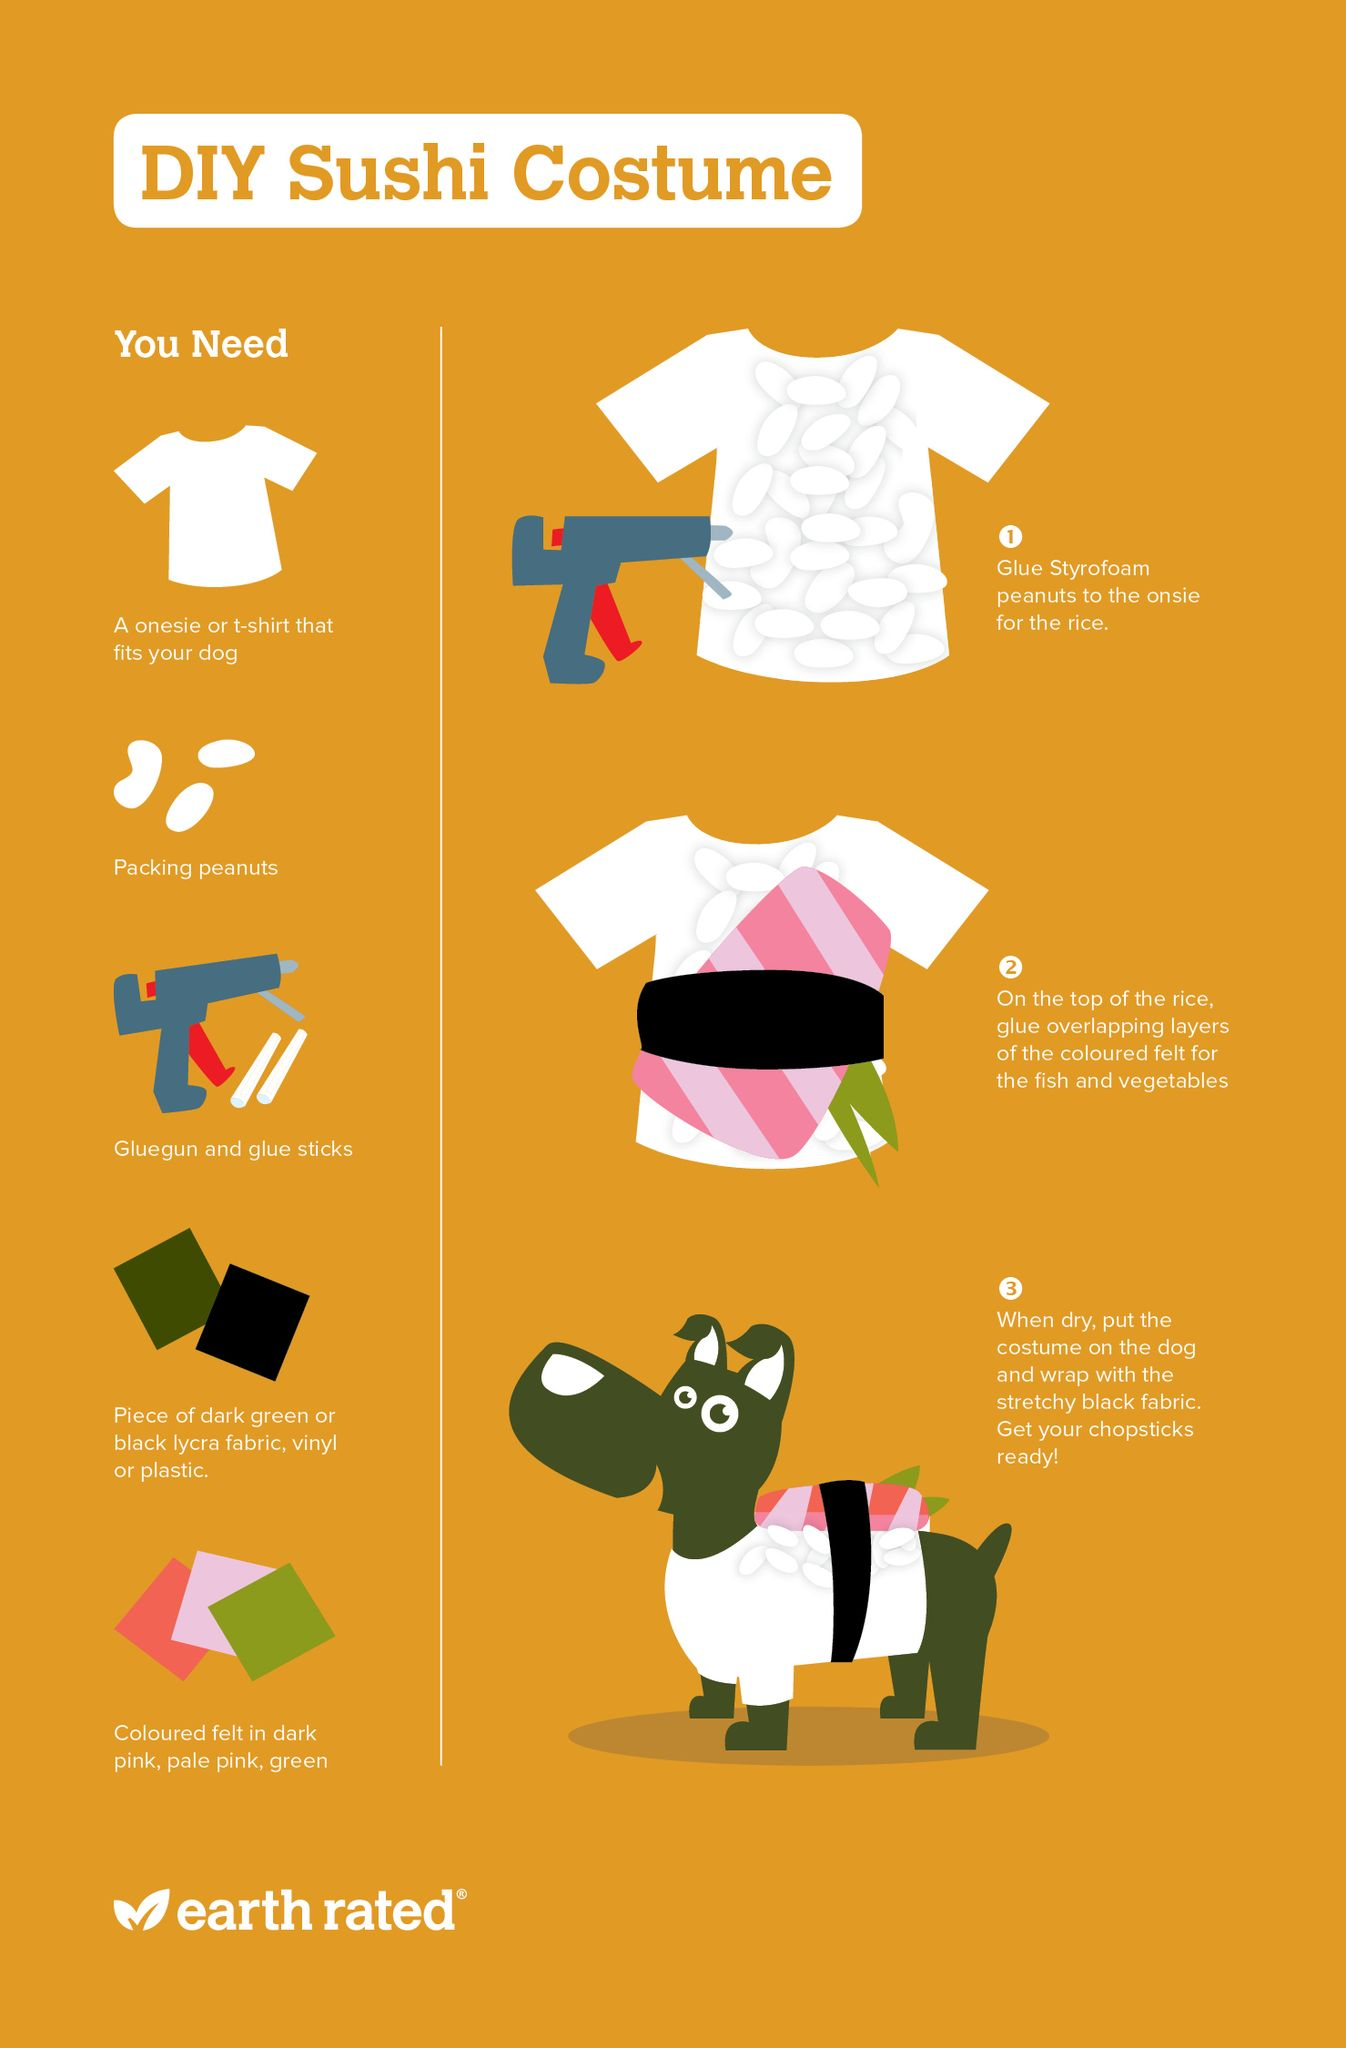 DIY Sushi Costume for Dogs Infographic